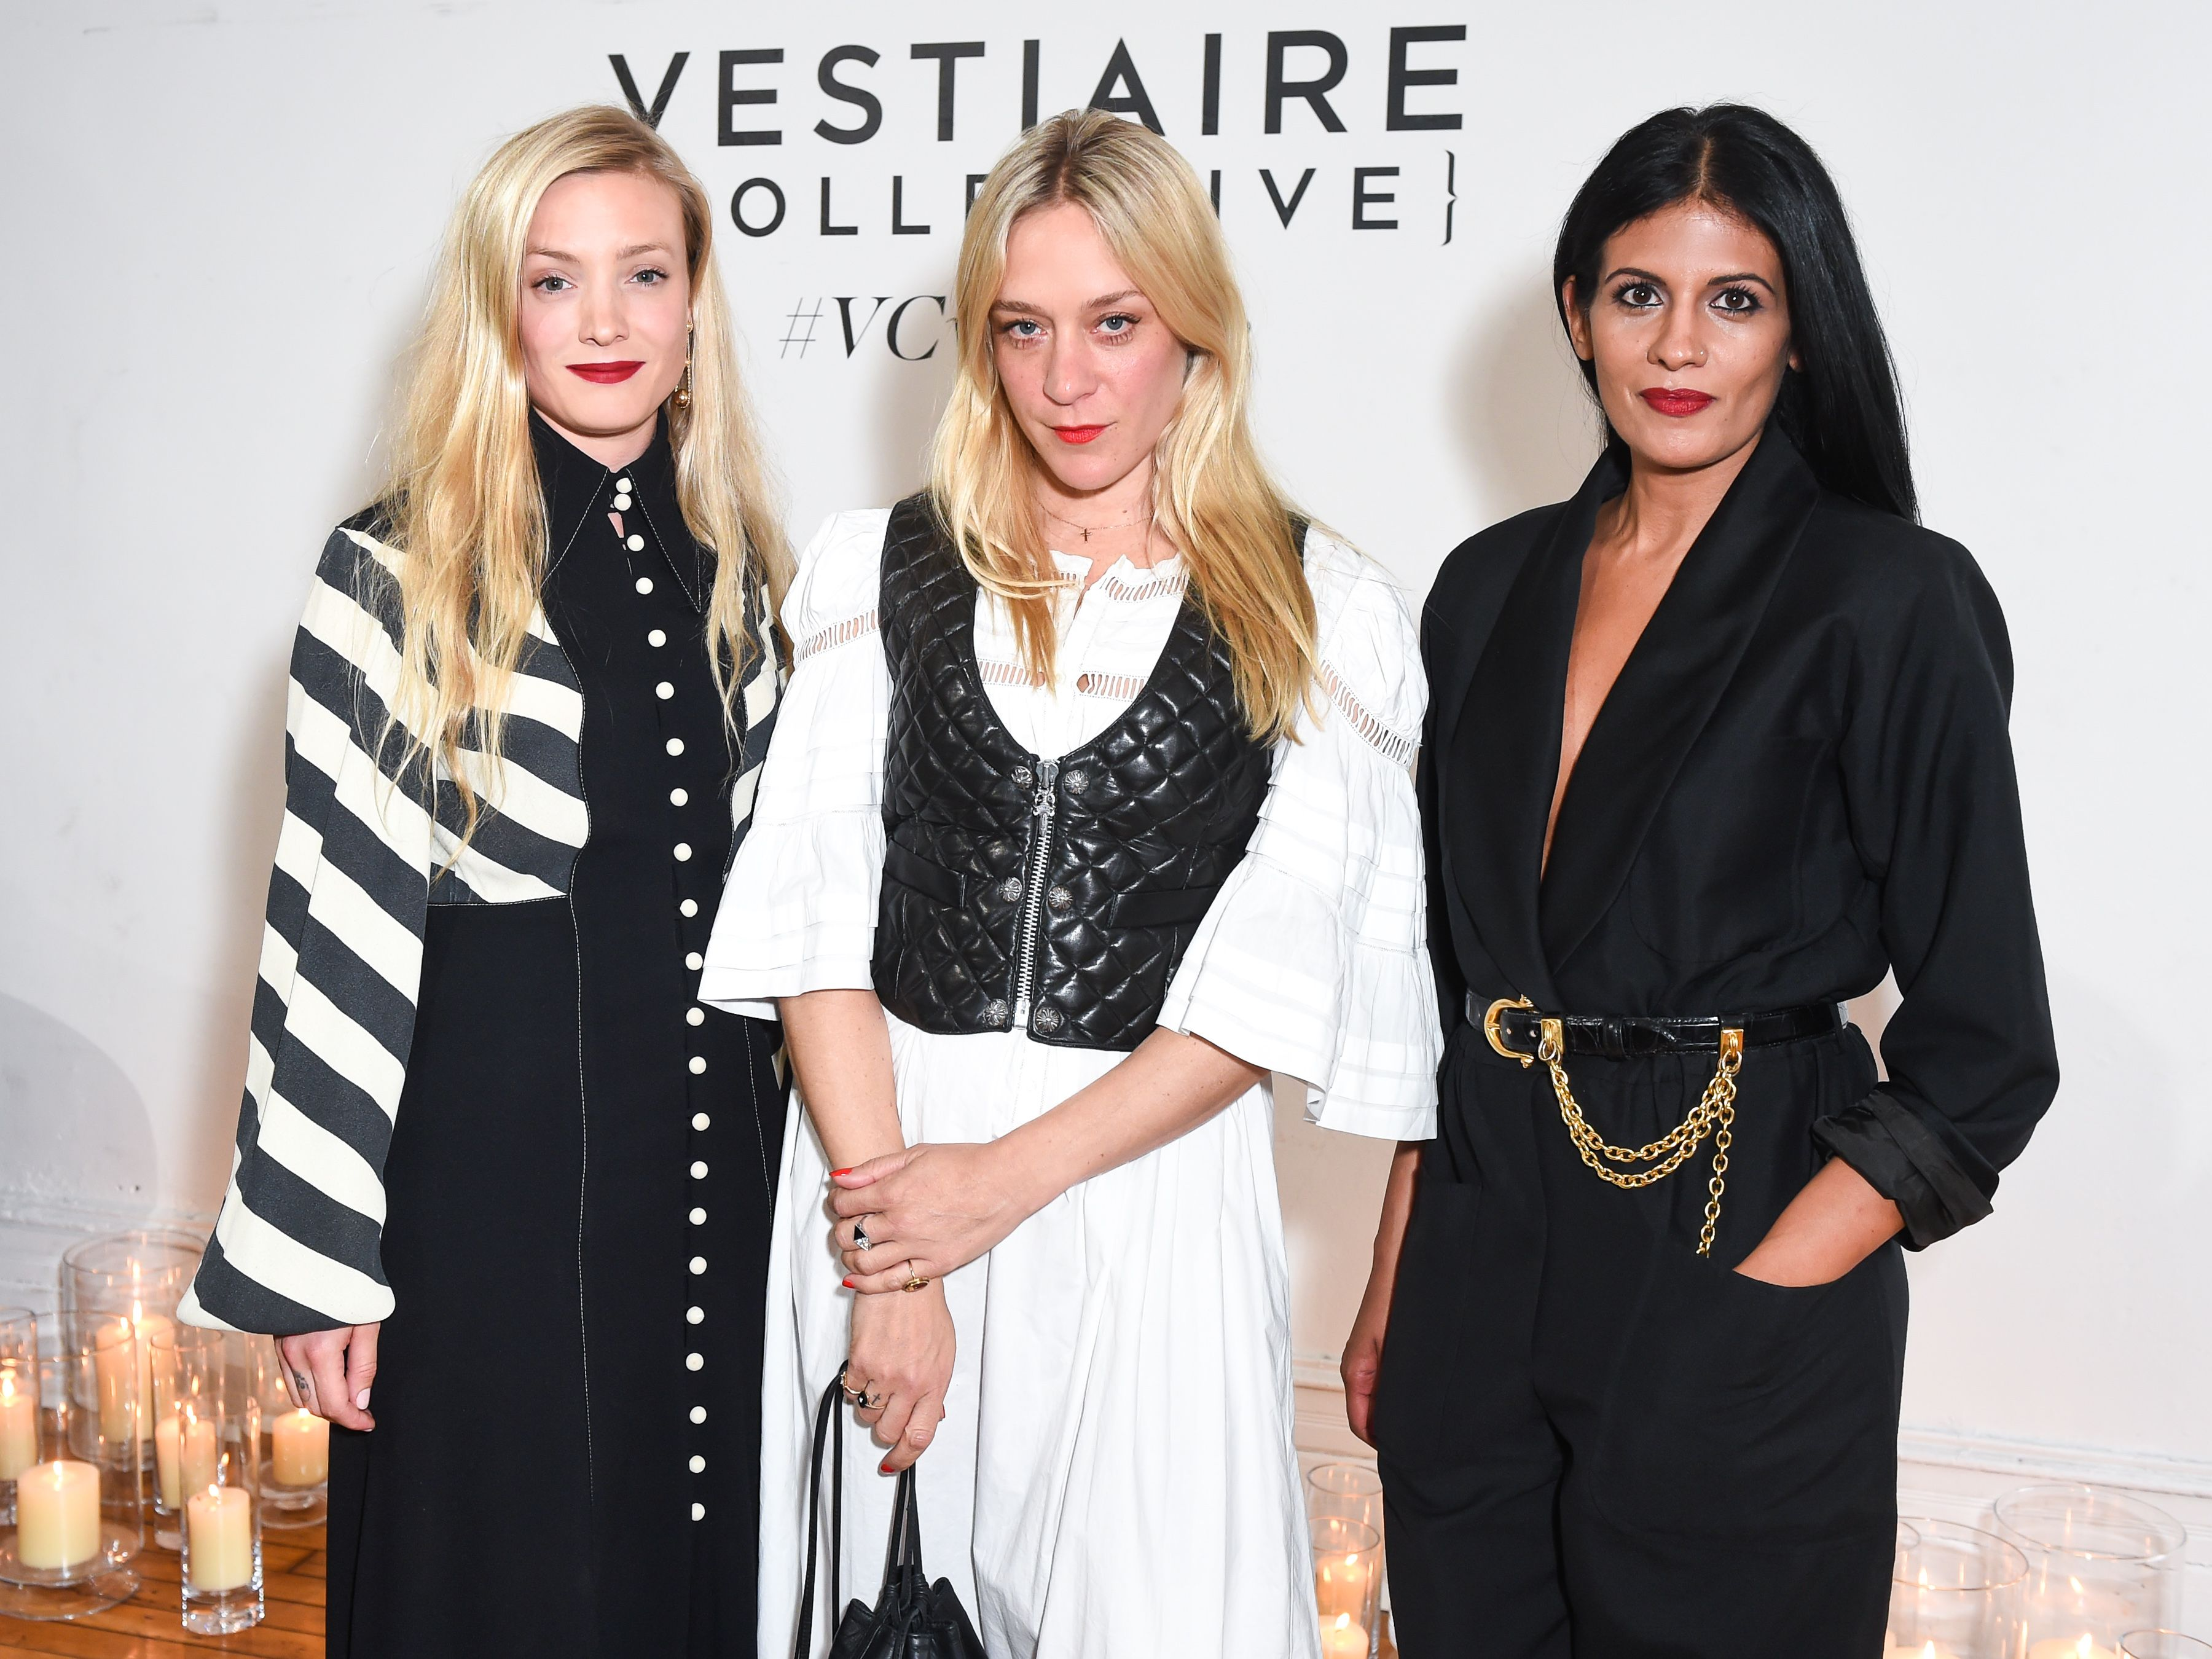 "<p>At the Chloë Sevigny and Kate Foley launch of Vintage on Vestiaire Collective<span class=""redactor-invisible-space"" data-redactor-tag=""span"" data-redactor-class=""redactor-invisible-space"" data-verified=""redactor""> on May 10, 2017 <span class=""redactor-invisible-space"" data-verified=""redactor"" data-redactor-tag=""span"" data-redactor-class=""redactor-invisible-space"">in New York City. </span></span><span class=""redactor-invisible-space"" data-verified=""redactor"" data-redactor-tag=""span"" data-redactor-class=""redactor-invisible-space""></span></p>"